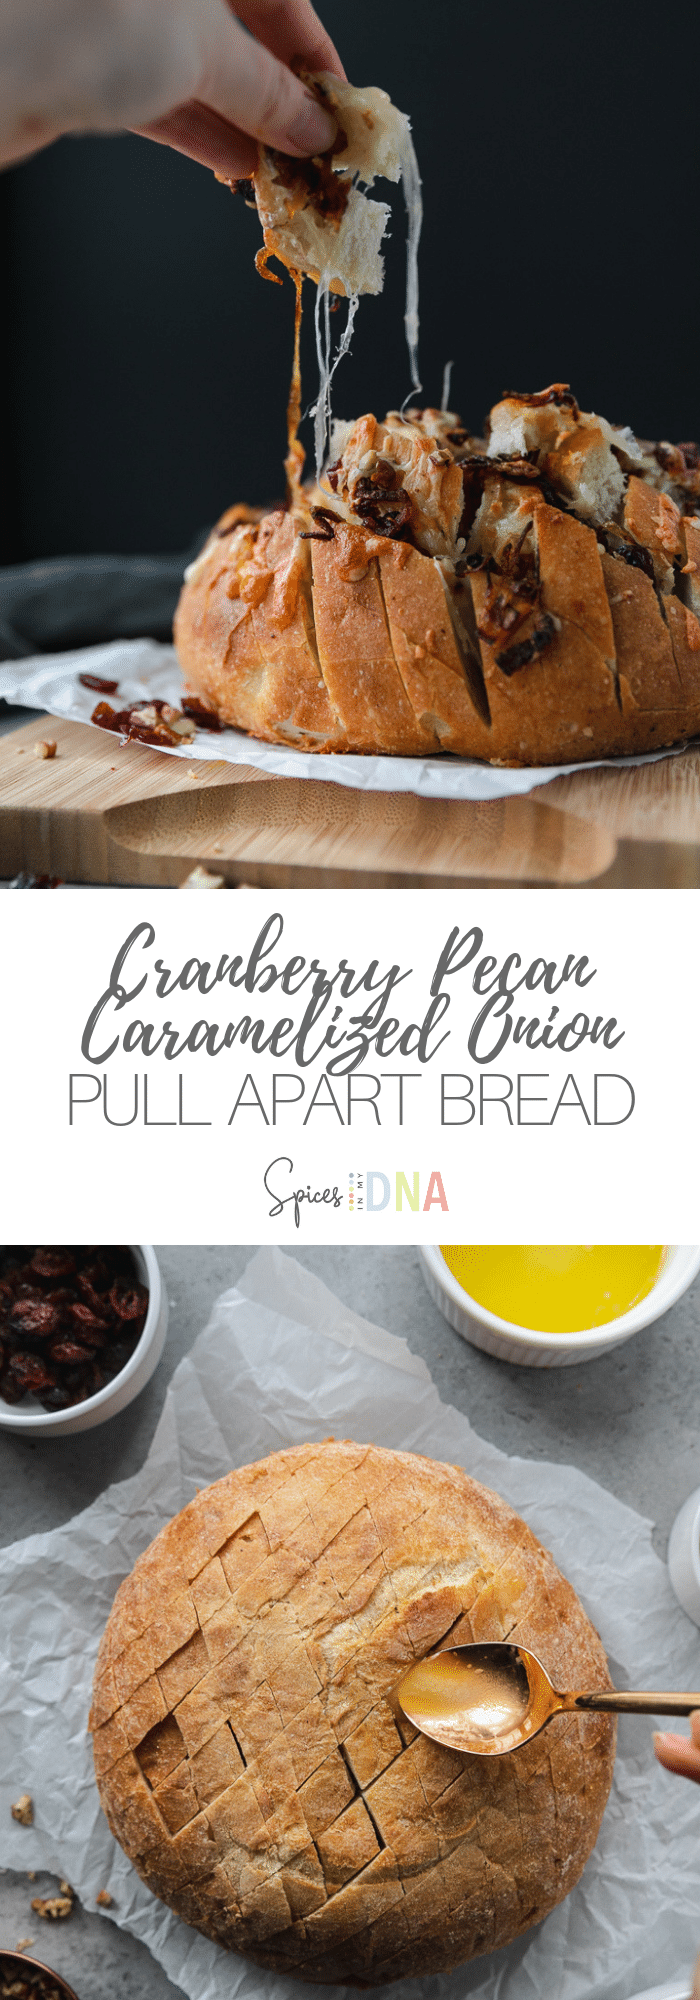 This Cranberry Pecan Caramelized Onion Cheesy Pull Apart Bread is the easiest, most crowd-pleasing, festive holiday appetizer! You just use a store-bought loaf of bread, make diagonal cuts in it, and then stuff it with a little melted butter, caramelized onions, dried cranberries, chopped pecans, white cheddar, and fontina cheese! It's unbelievably delicious. #appetizer #pullapartbread #holidayrecipe #cheesy